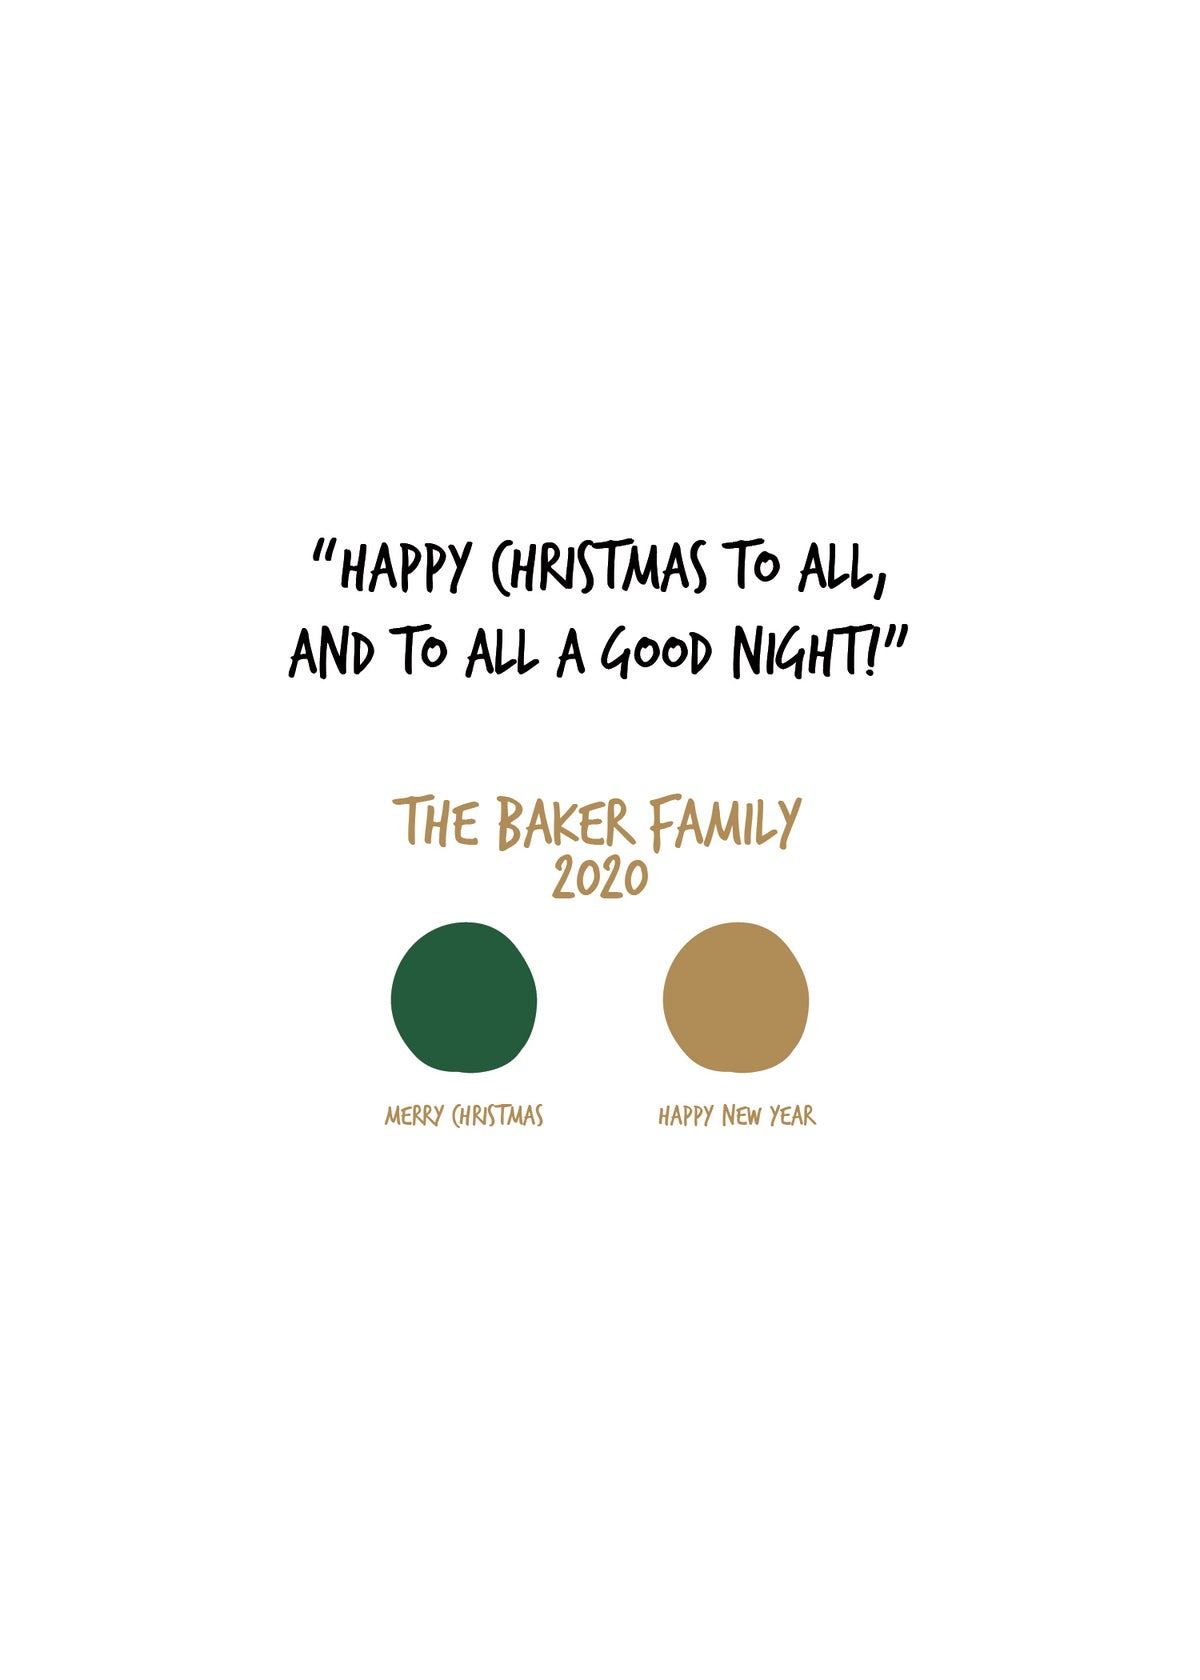 The Color of Twas the Night before Christmas